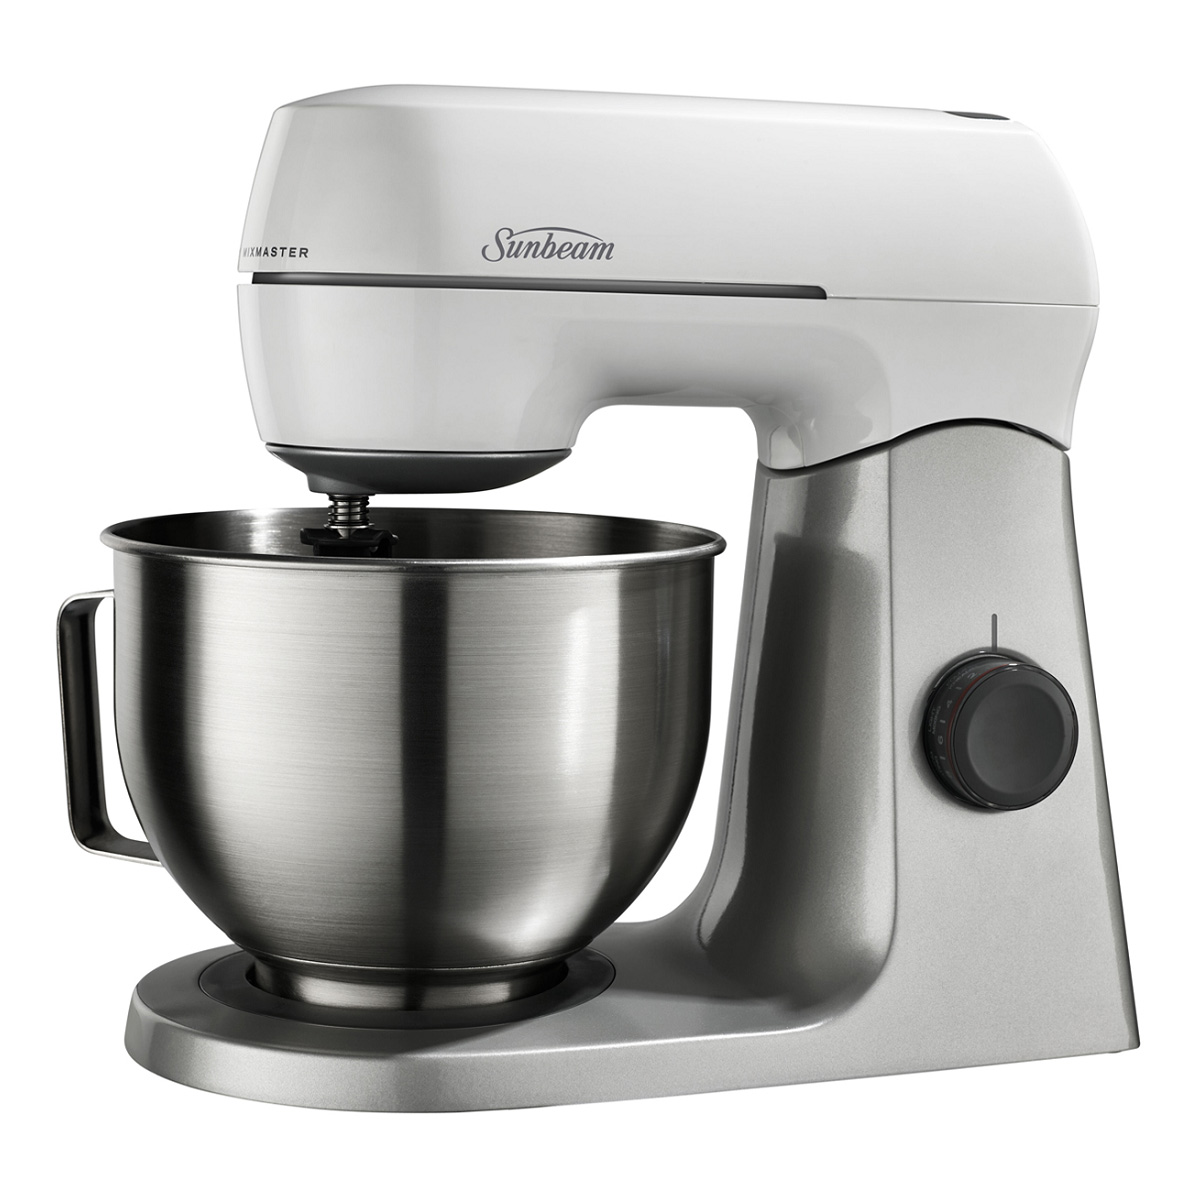 Sunbeam Mixers MX7900W